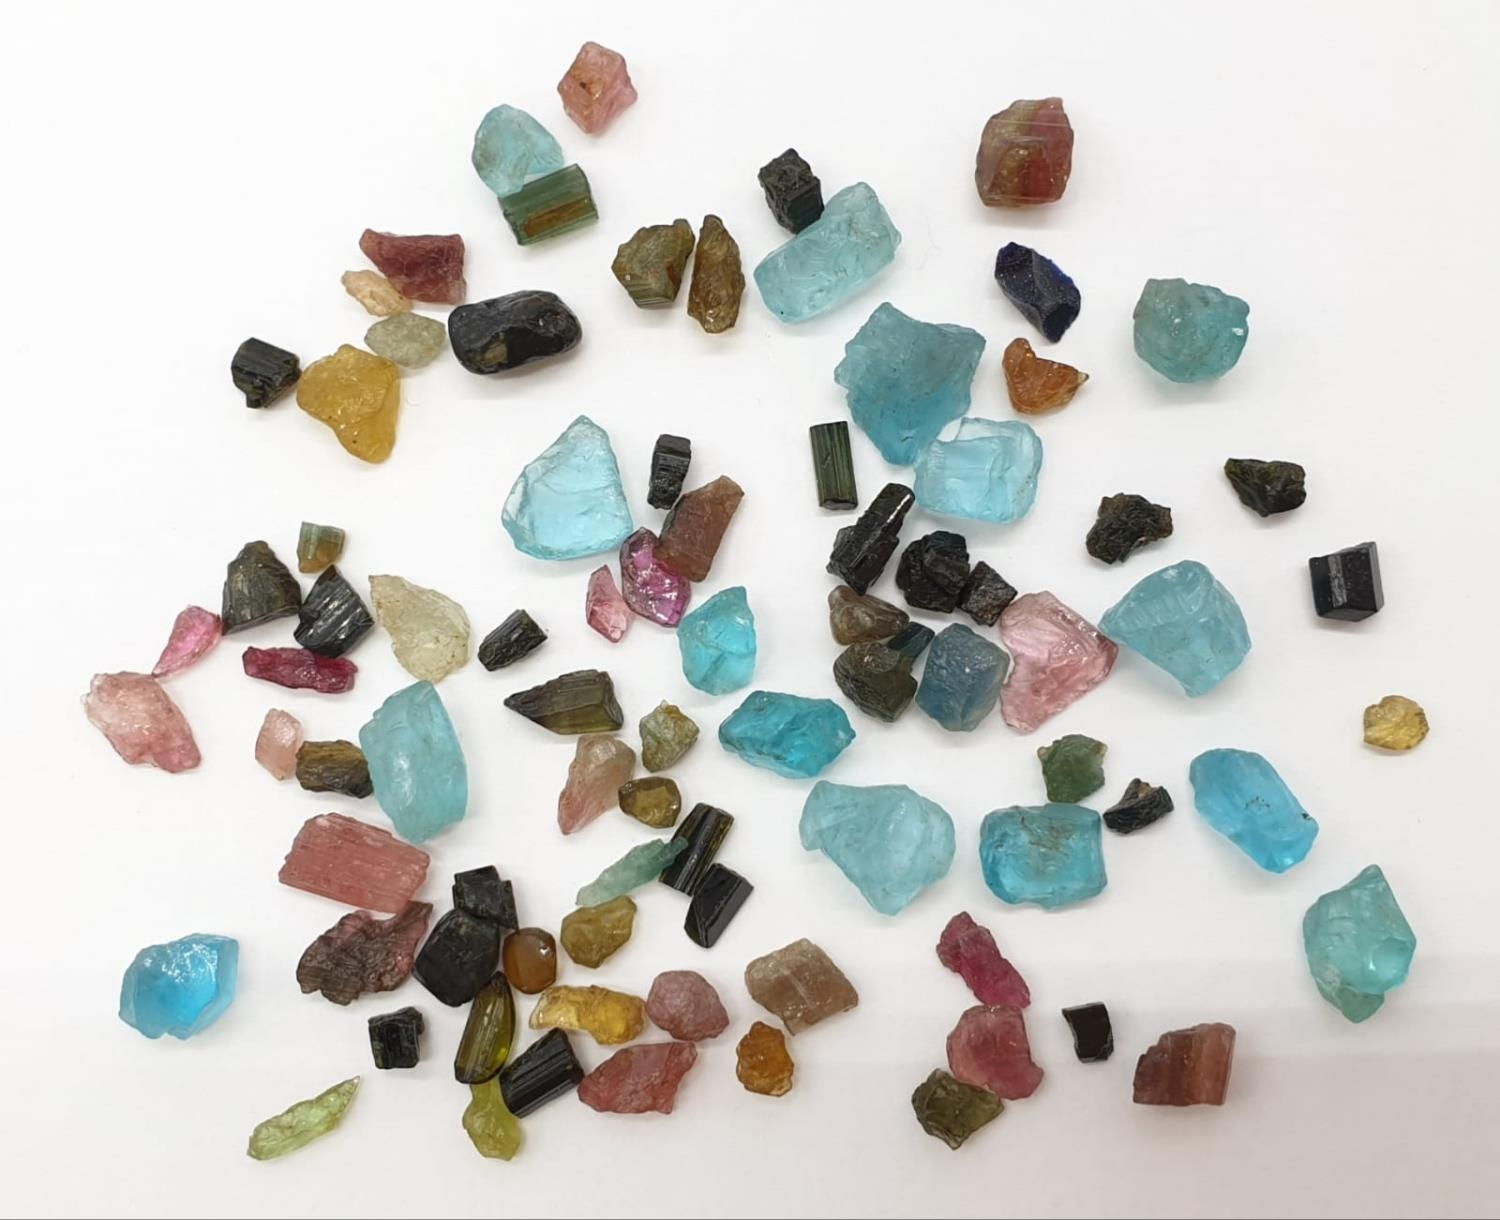 62cts rough tourmalines and apatite gemstone - Image 3 of 3